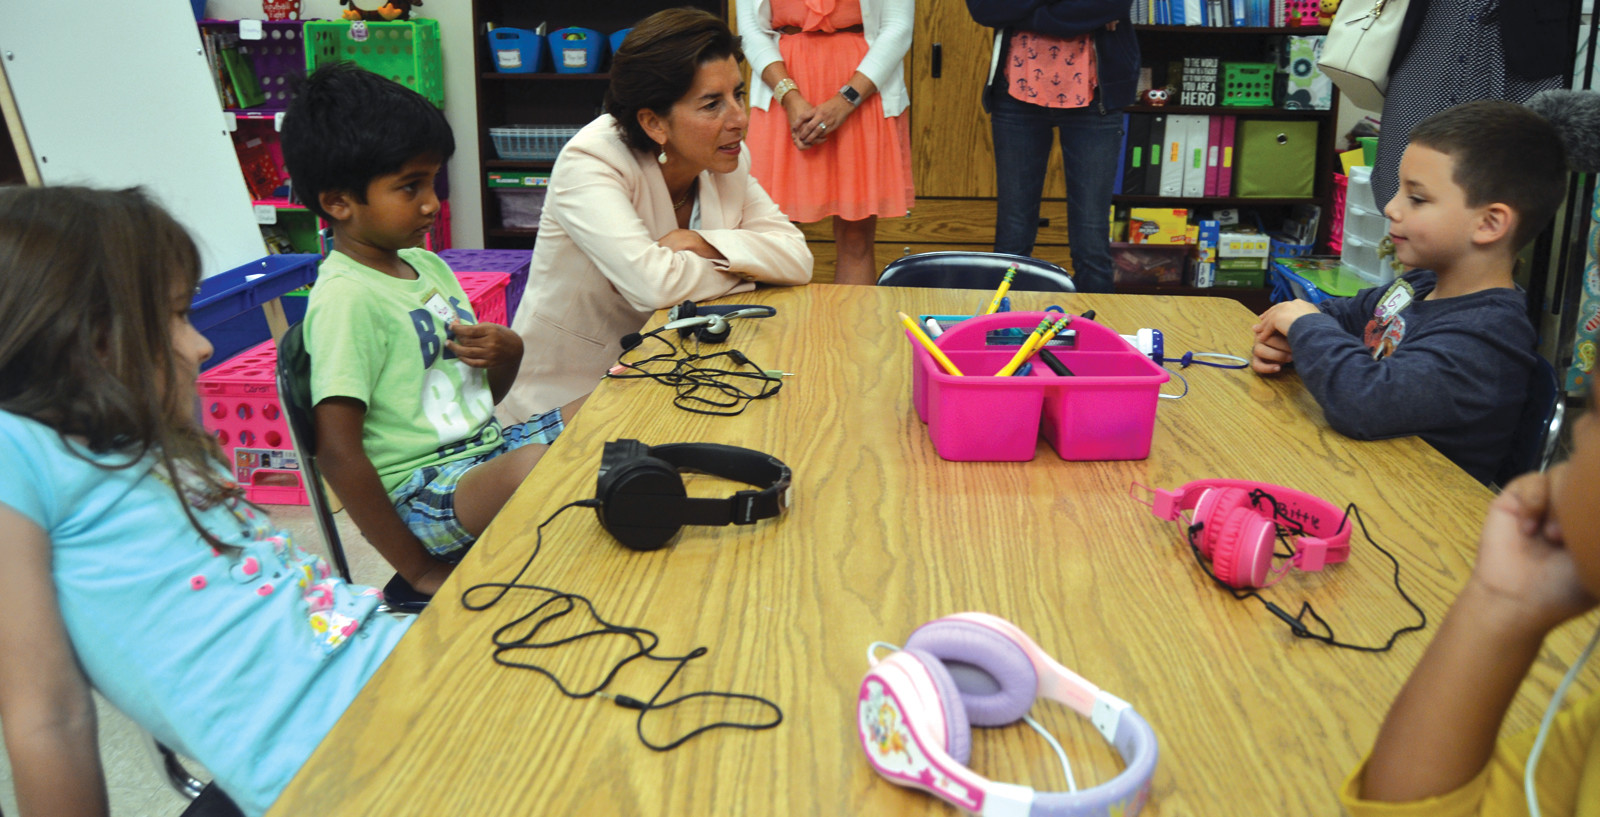 HOLDING COURT: Gov. Raimondo talks with kindergarteners and discusses what they like about school.